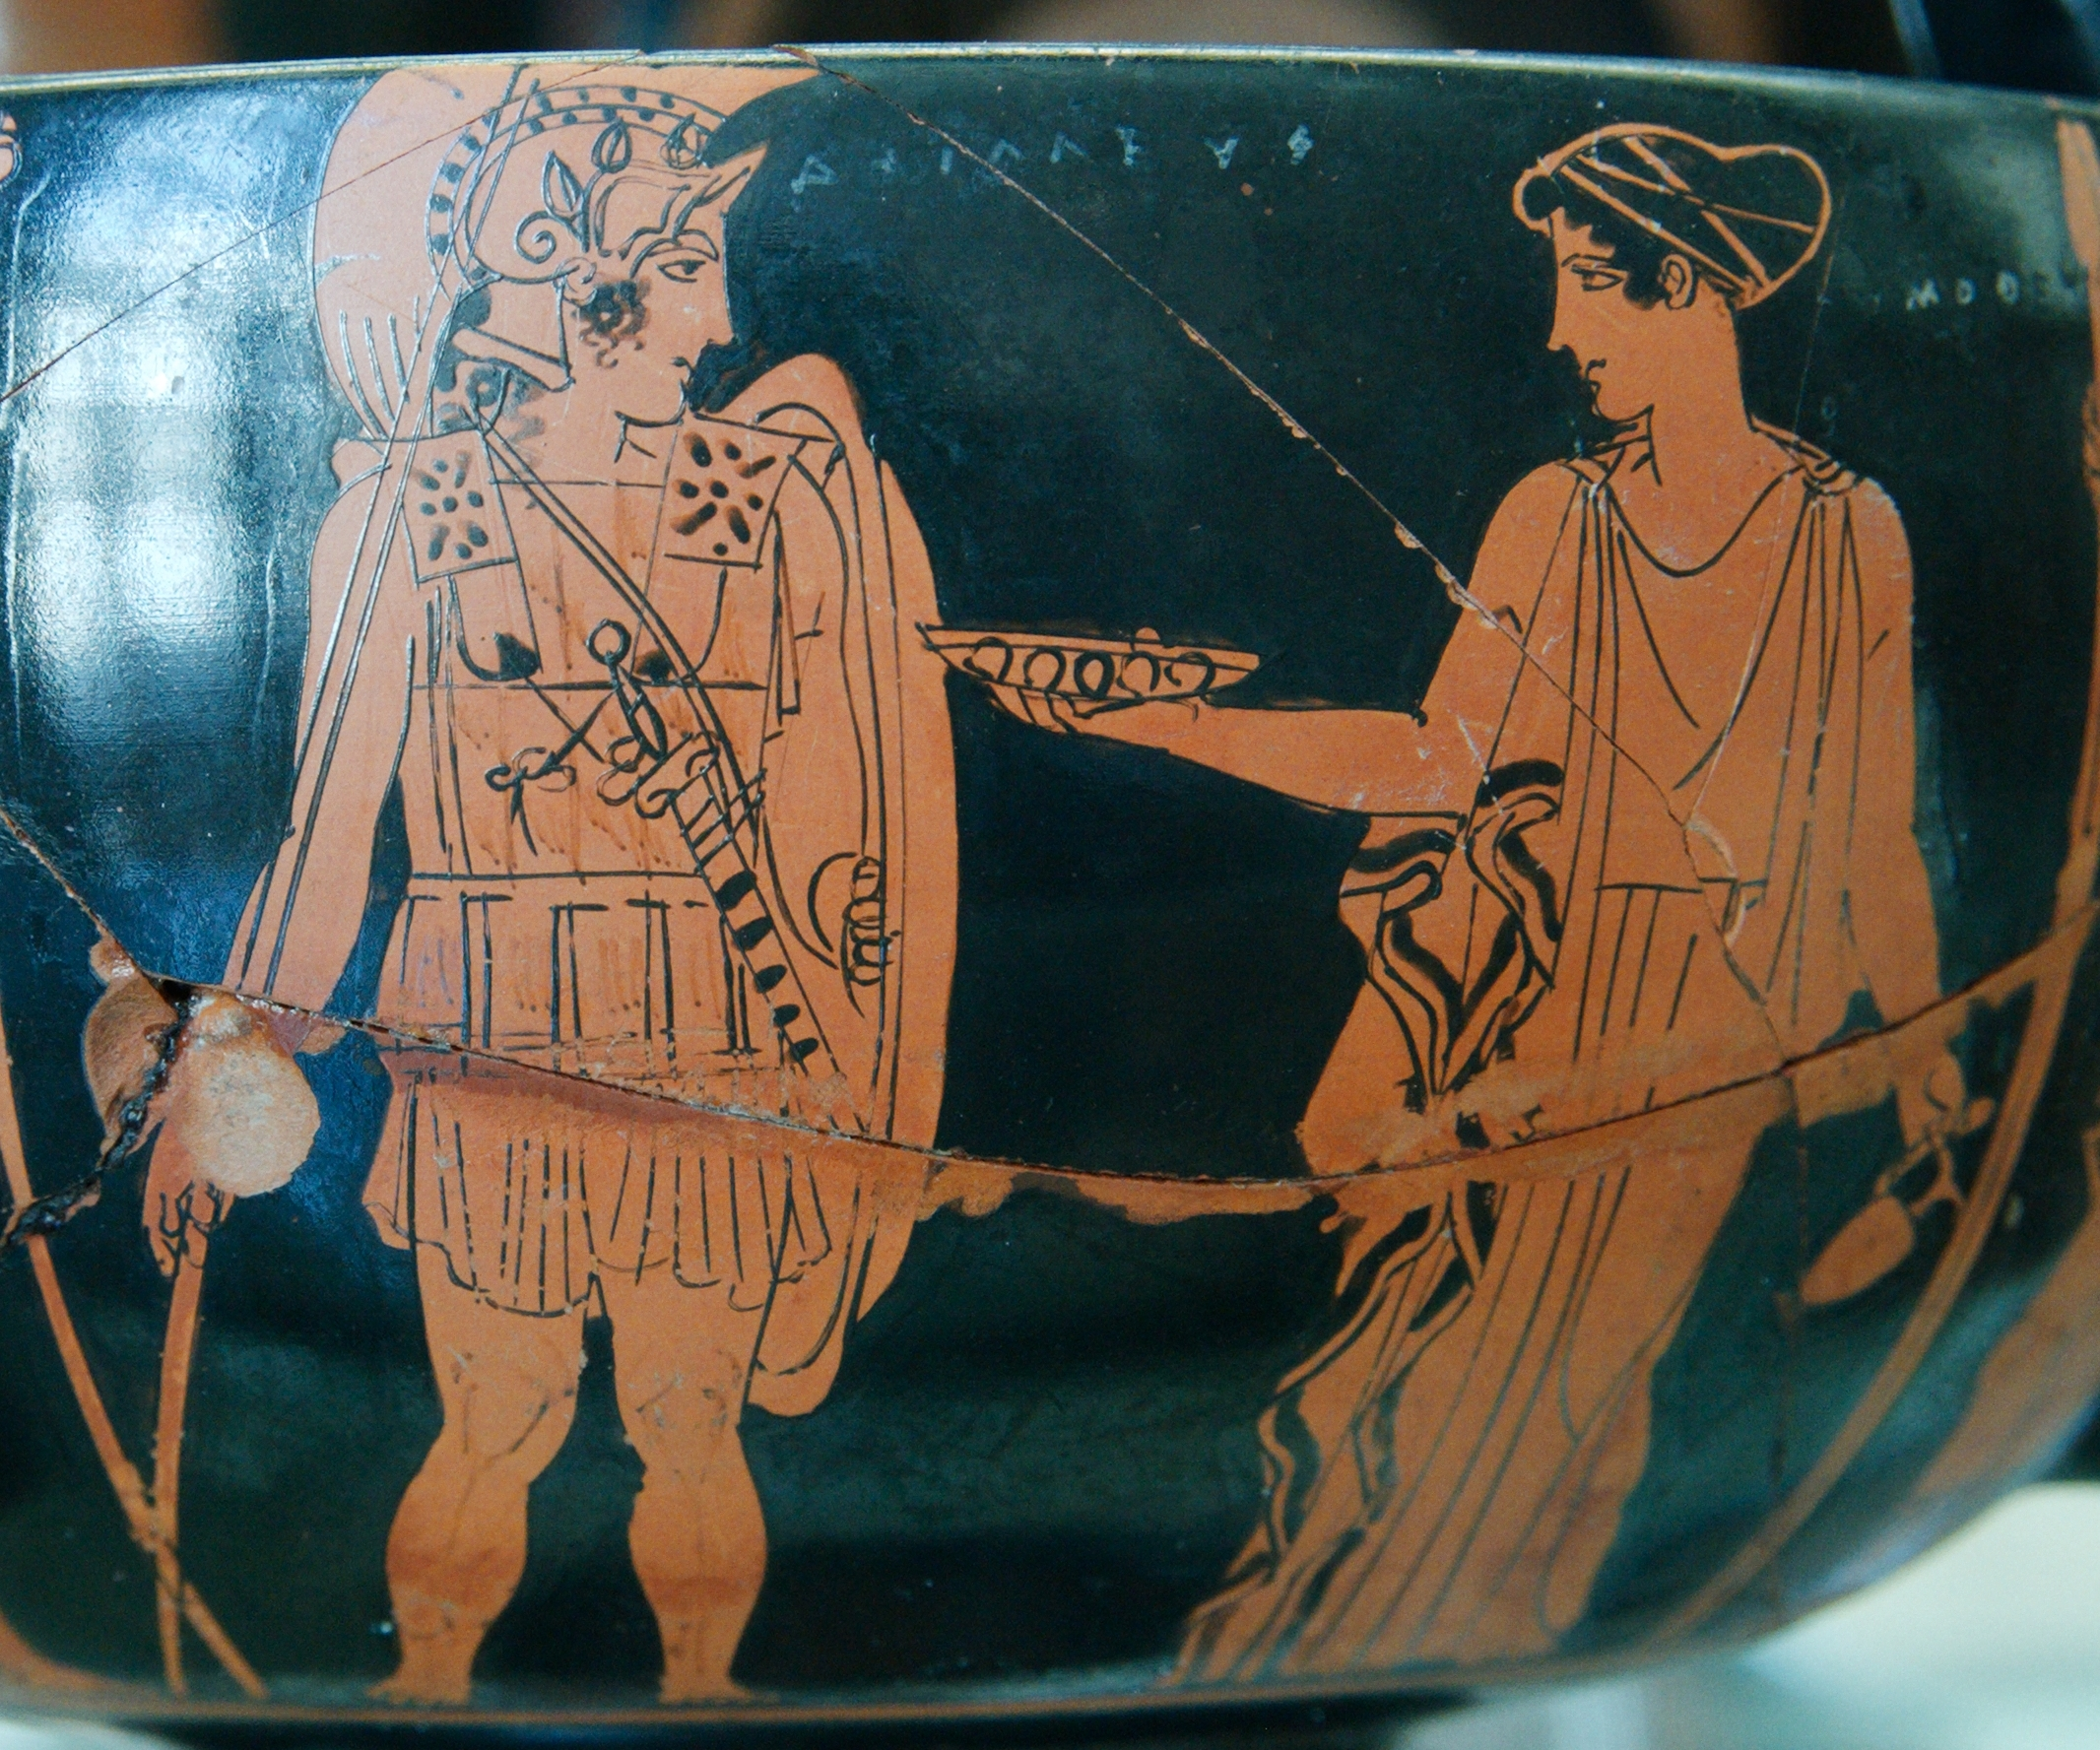 achilles u2022 facts and information about the greek hero achilles